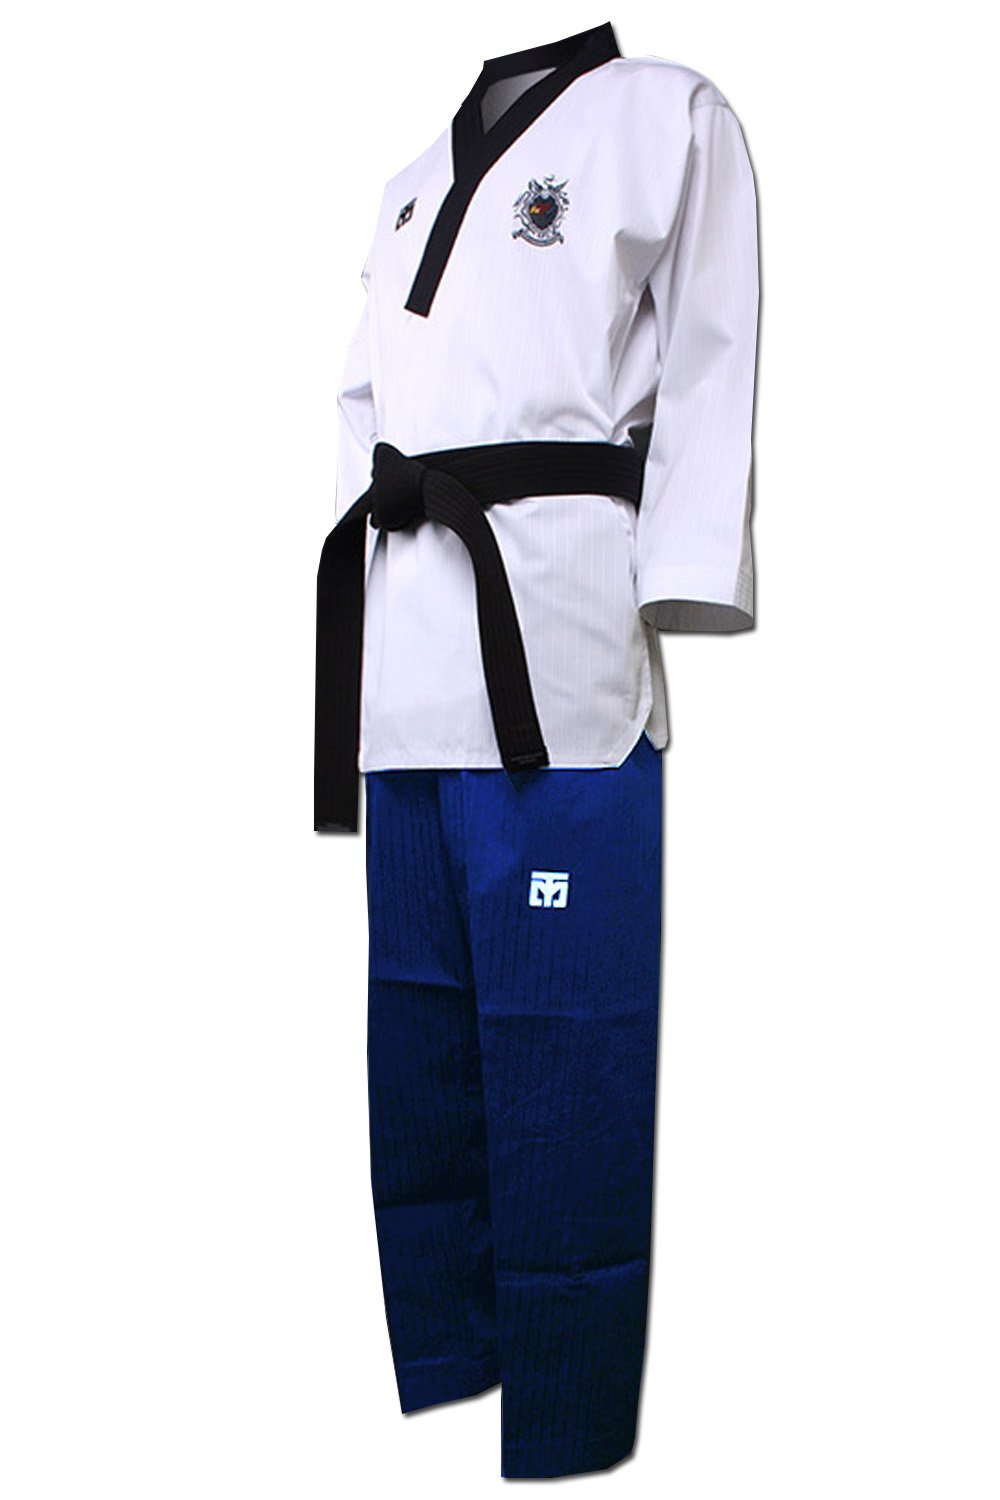 (New Product) Mooto WTF Poomsae Uniform Korea Taekwondo female Dan Dobok (160(US2)(4.92~5.24ft or 150-160cm)) by Mooto